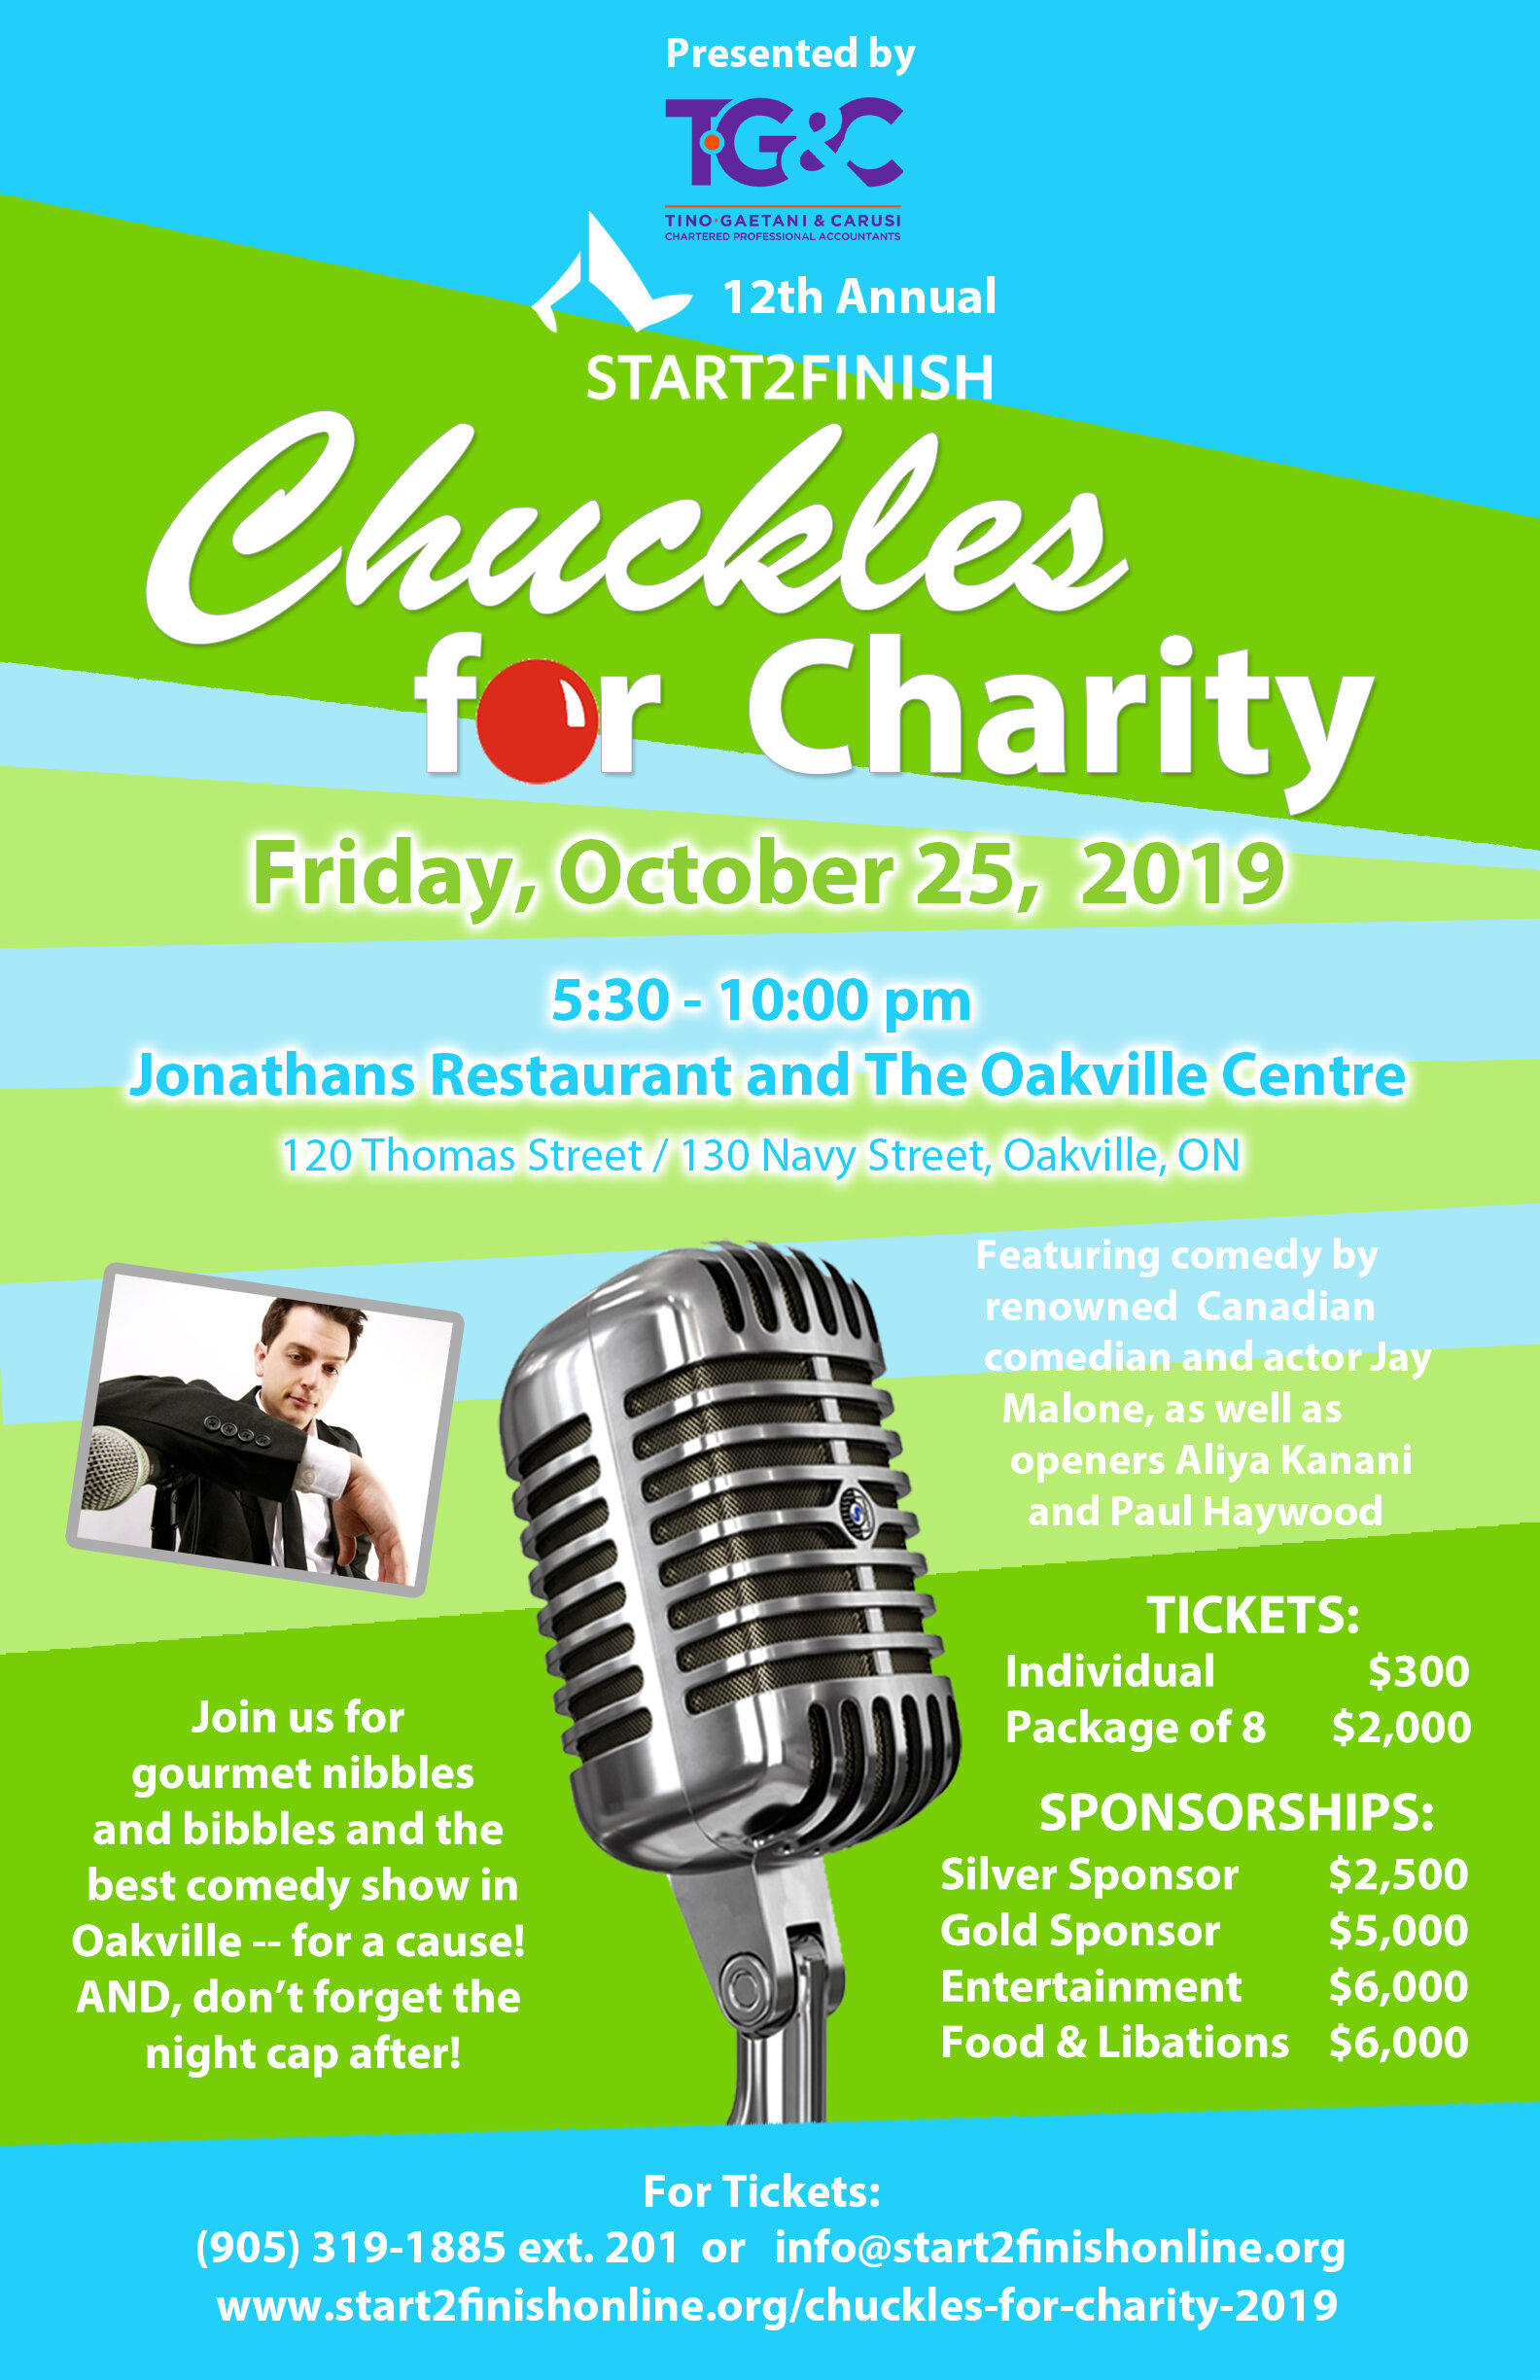 Flyer - S2F Chuckles for Charity 2019.jpg